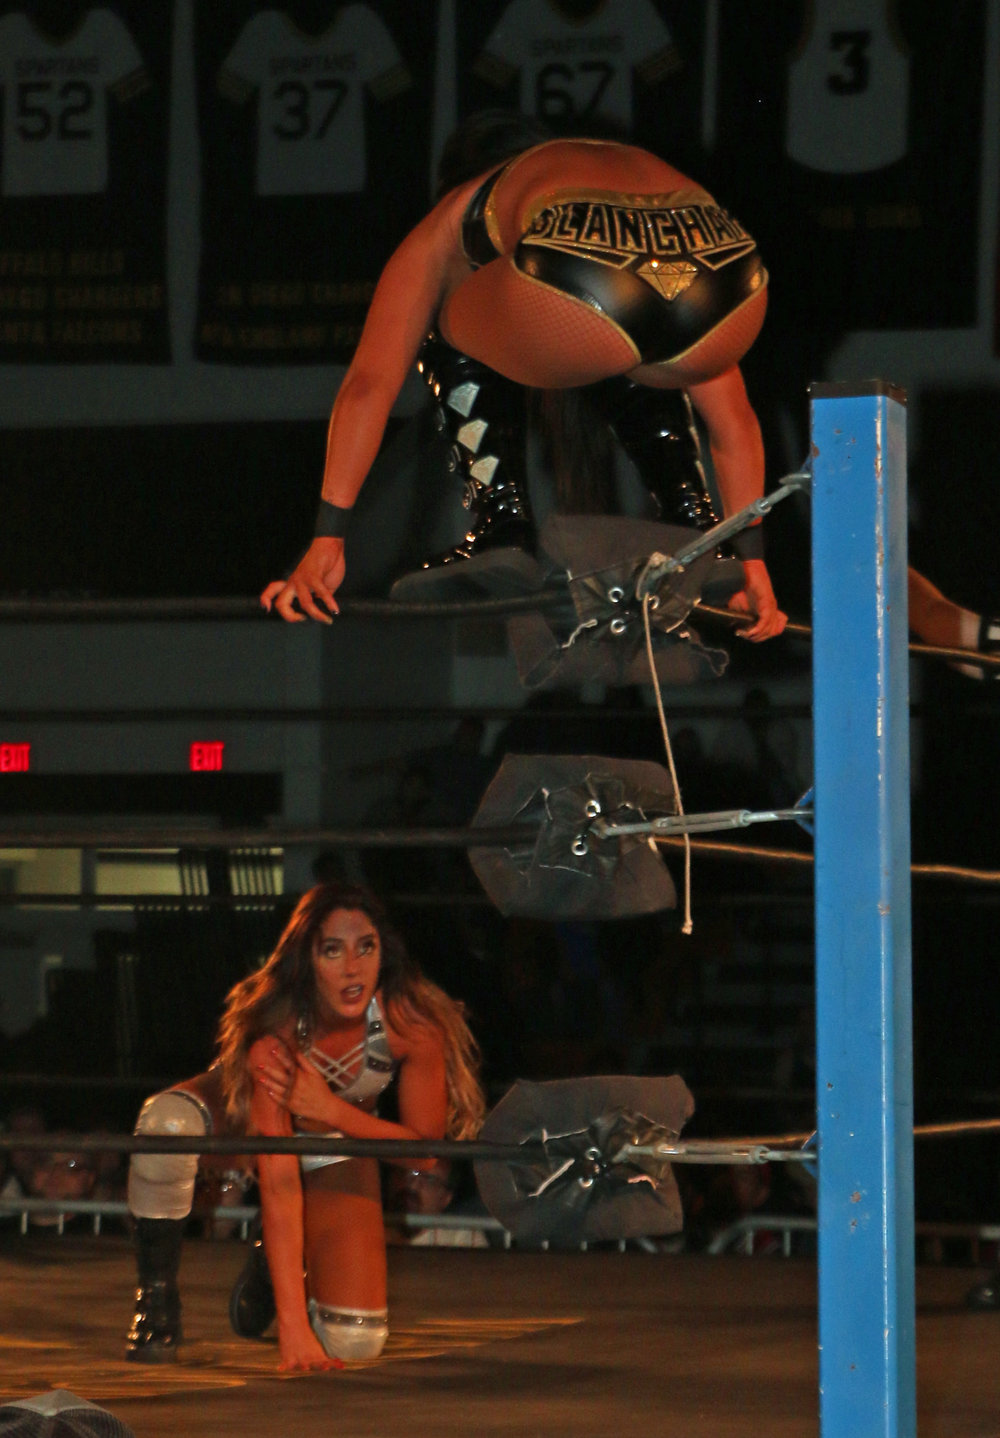 Tessa Blanchard looks to jump off the top rope as Britt Baker fights to get back on her feet.